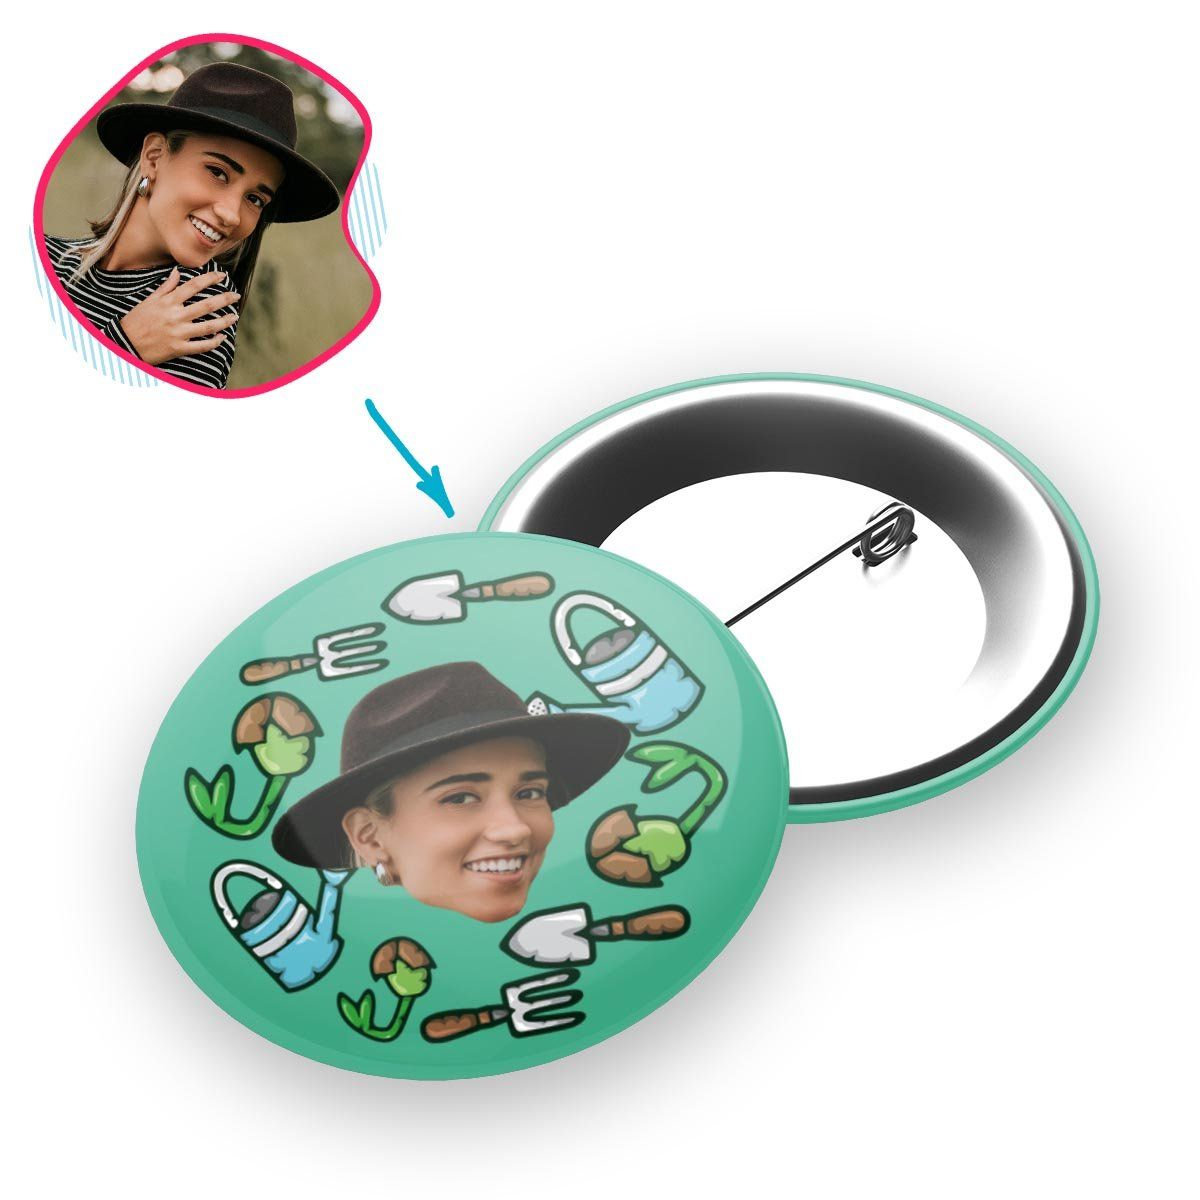 mint Gardening pin personalized with photo of face printed on it